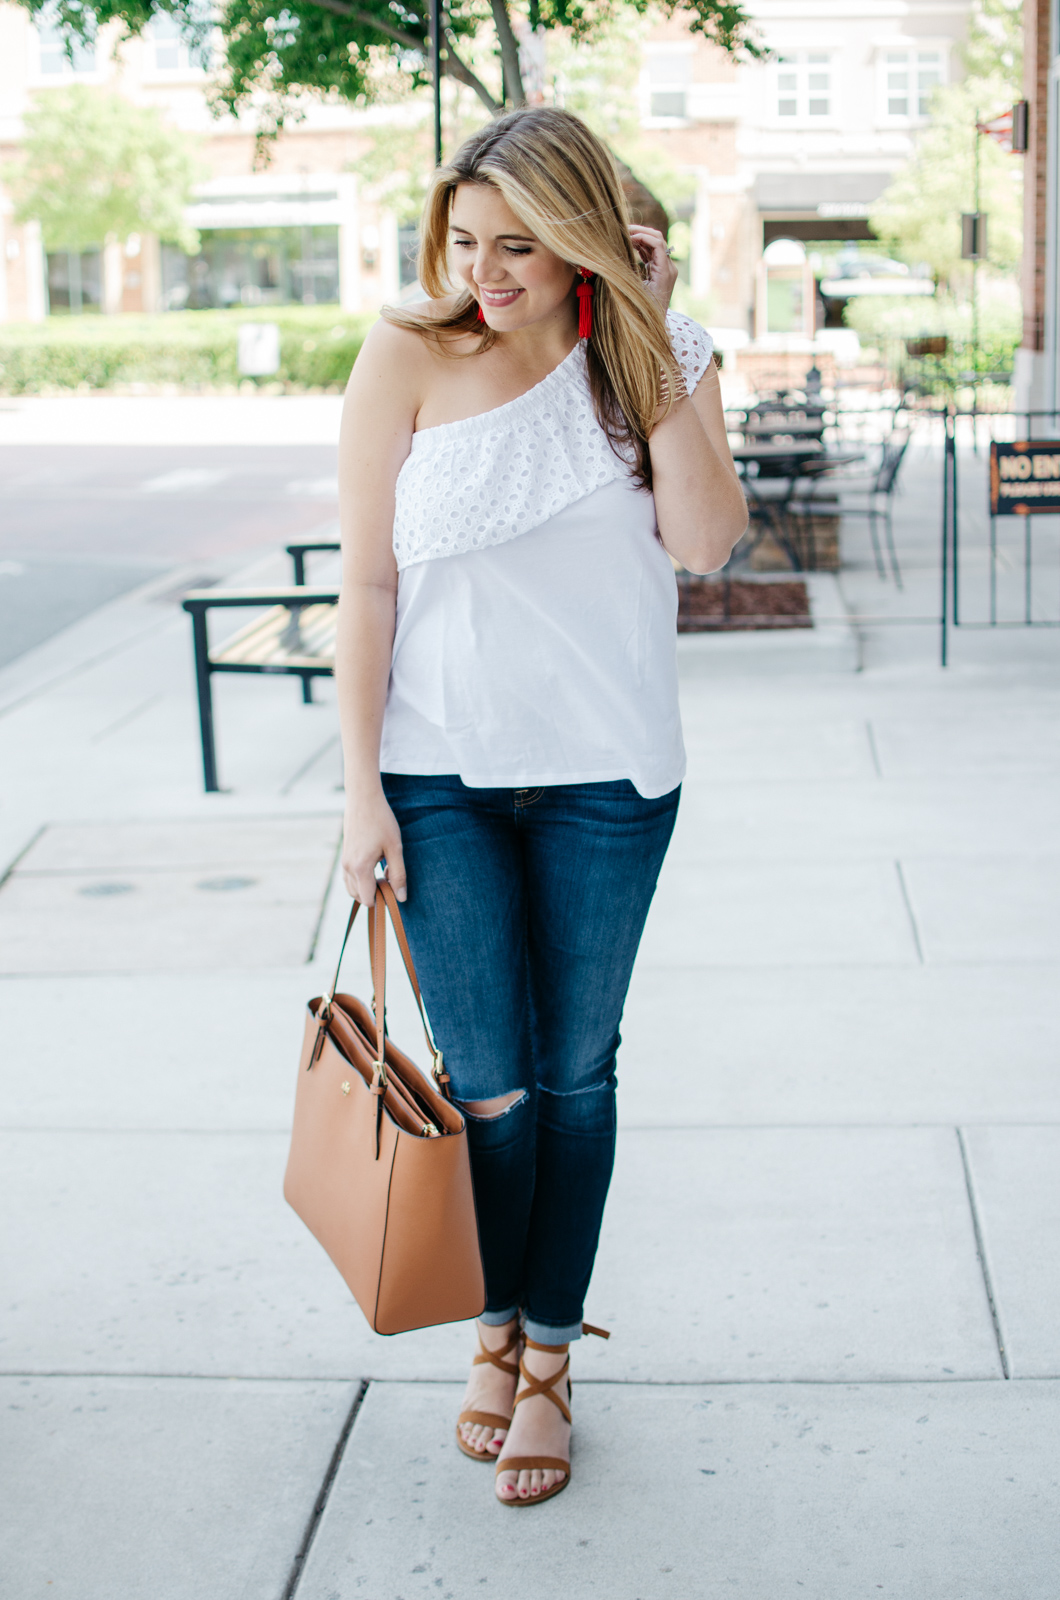 first trimester style - one shoulder top | For more maternity outfits, head to bylaurenm.com!